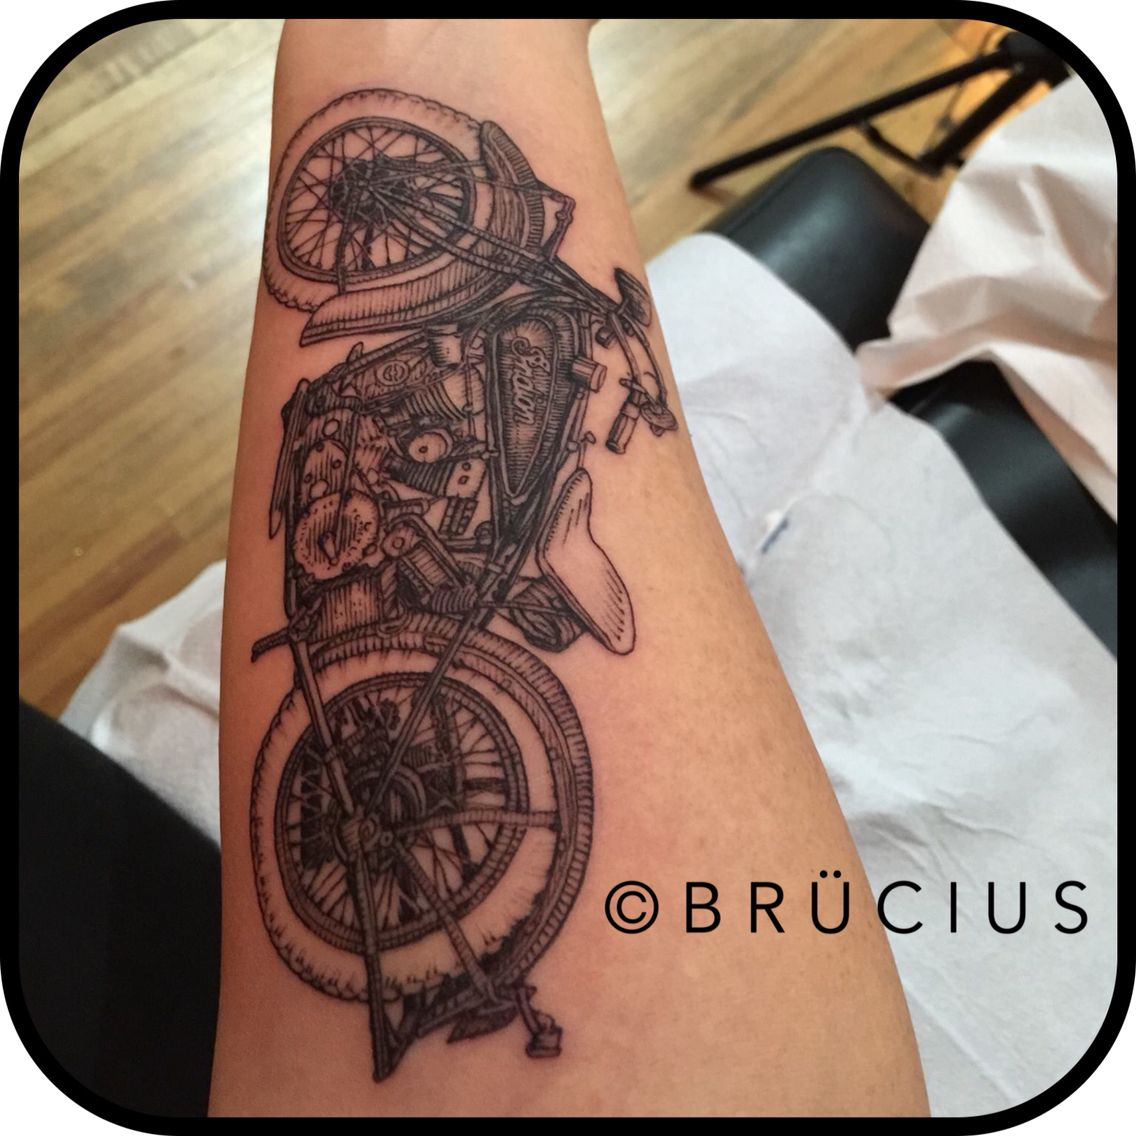 Br cius tattoo sf sanfrancisco brucius engraving for Indian motorcycle tattoo